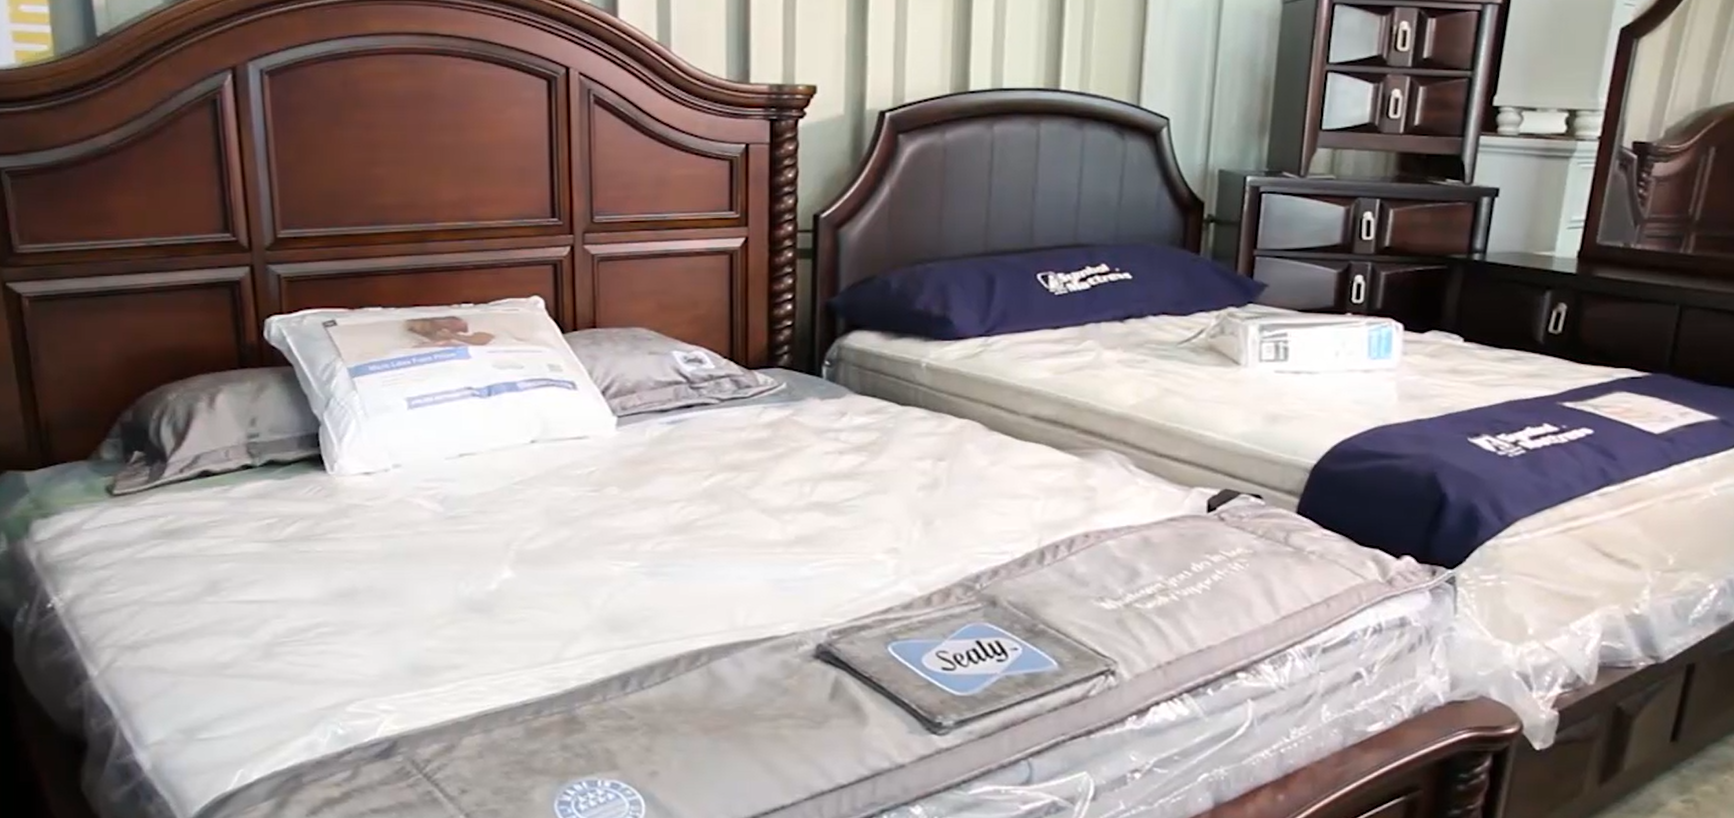 Best price furniture mattress fleming island florida for Best furniture for the price